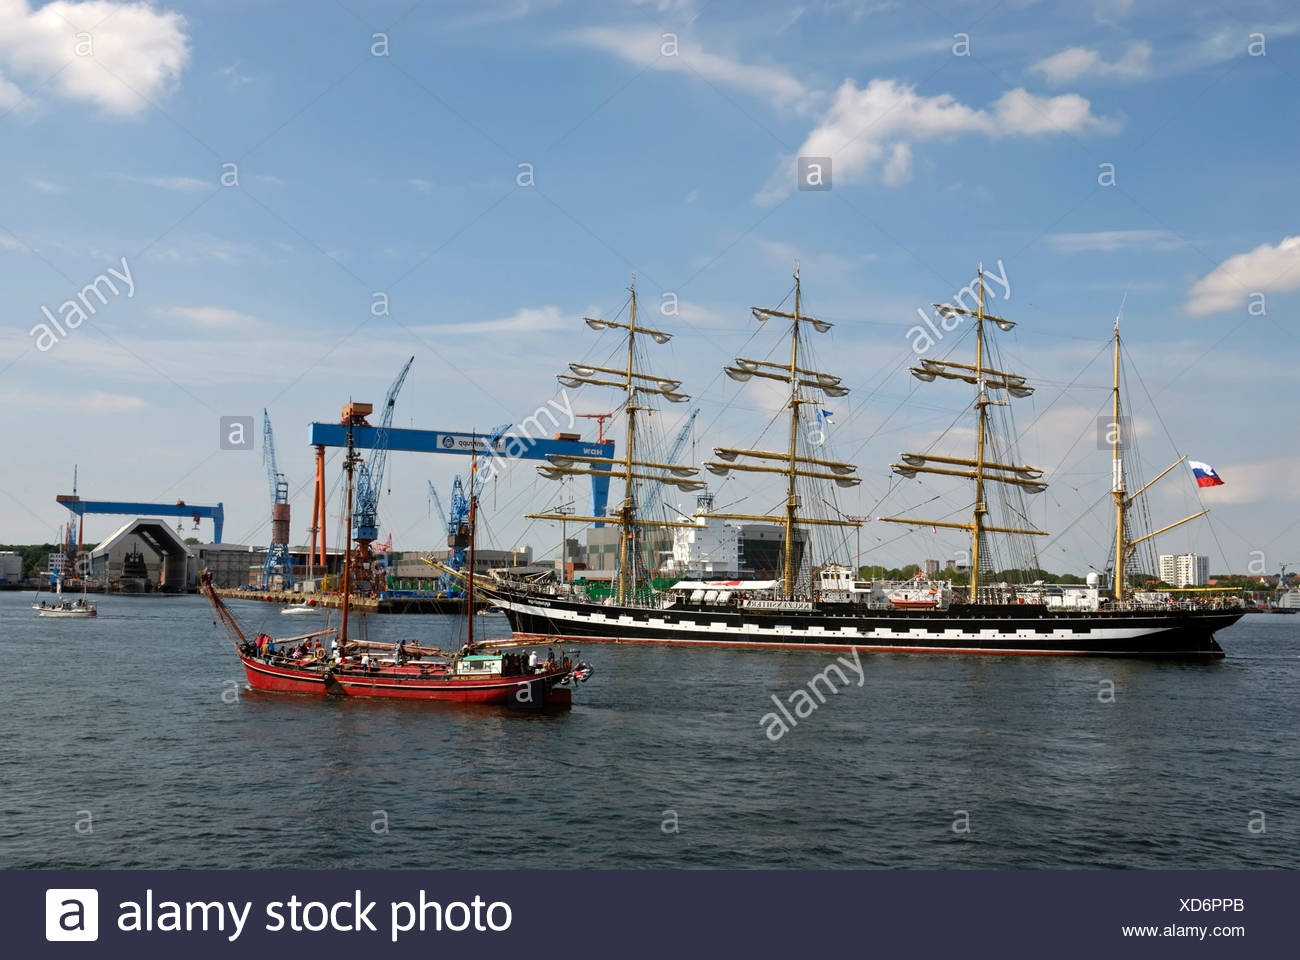 Russian Tall Ship, Kruzenshtern, and other tall ships in front of the crane of the Howaldtswerke-Deutsche Werft, HDW Shipyard, - Stock Image